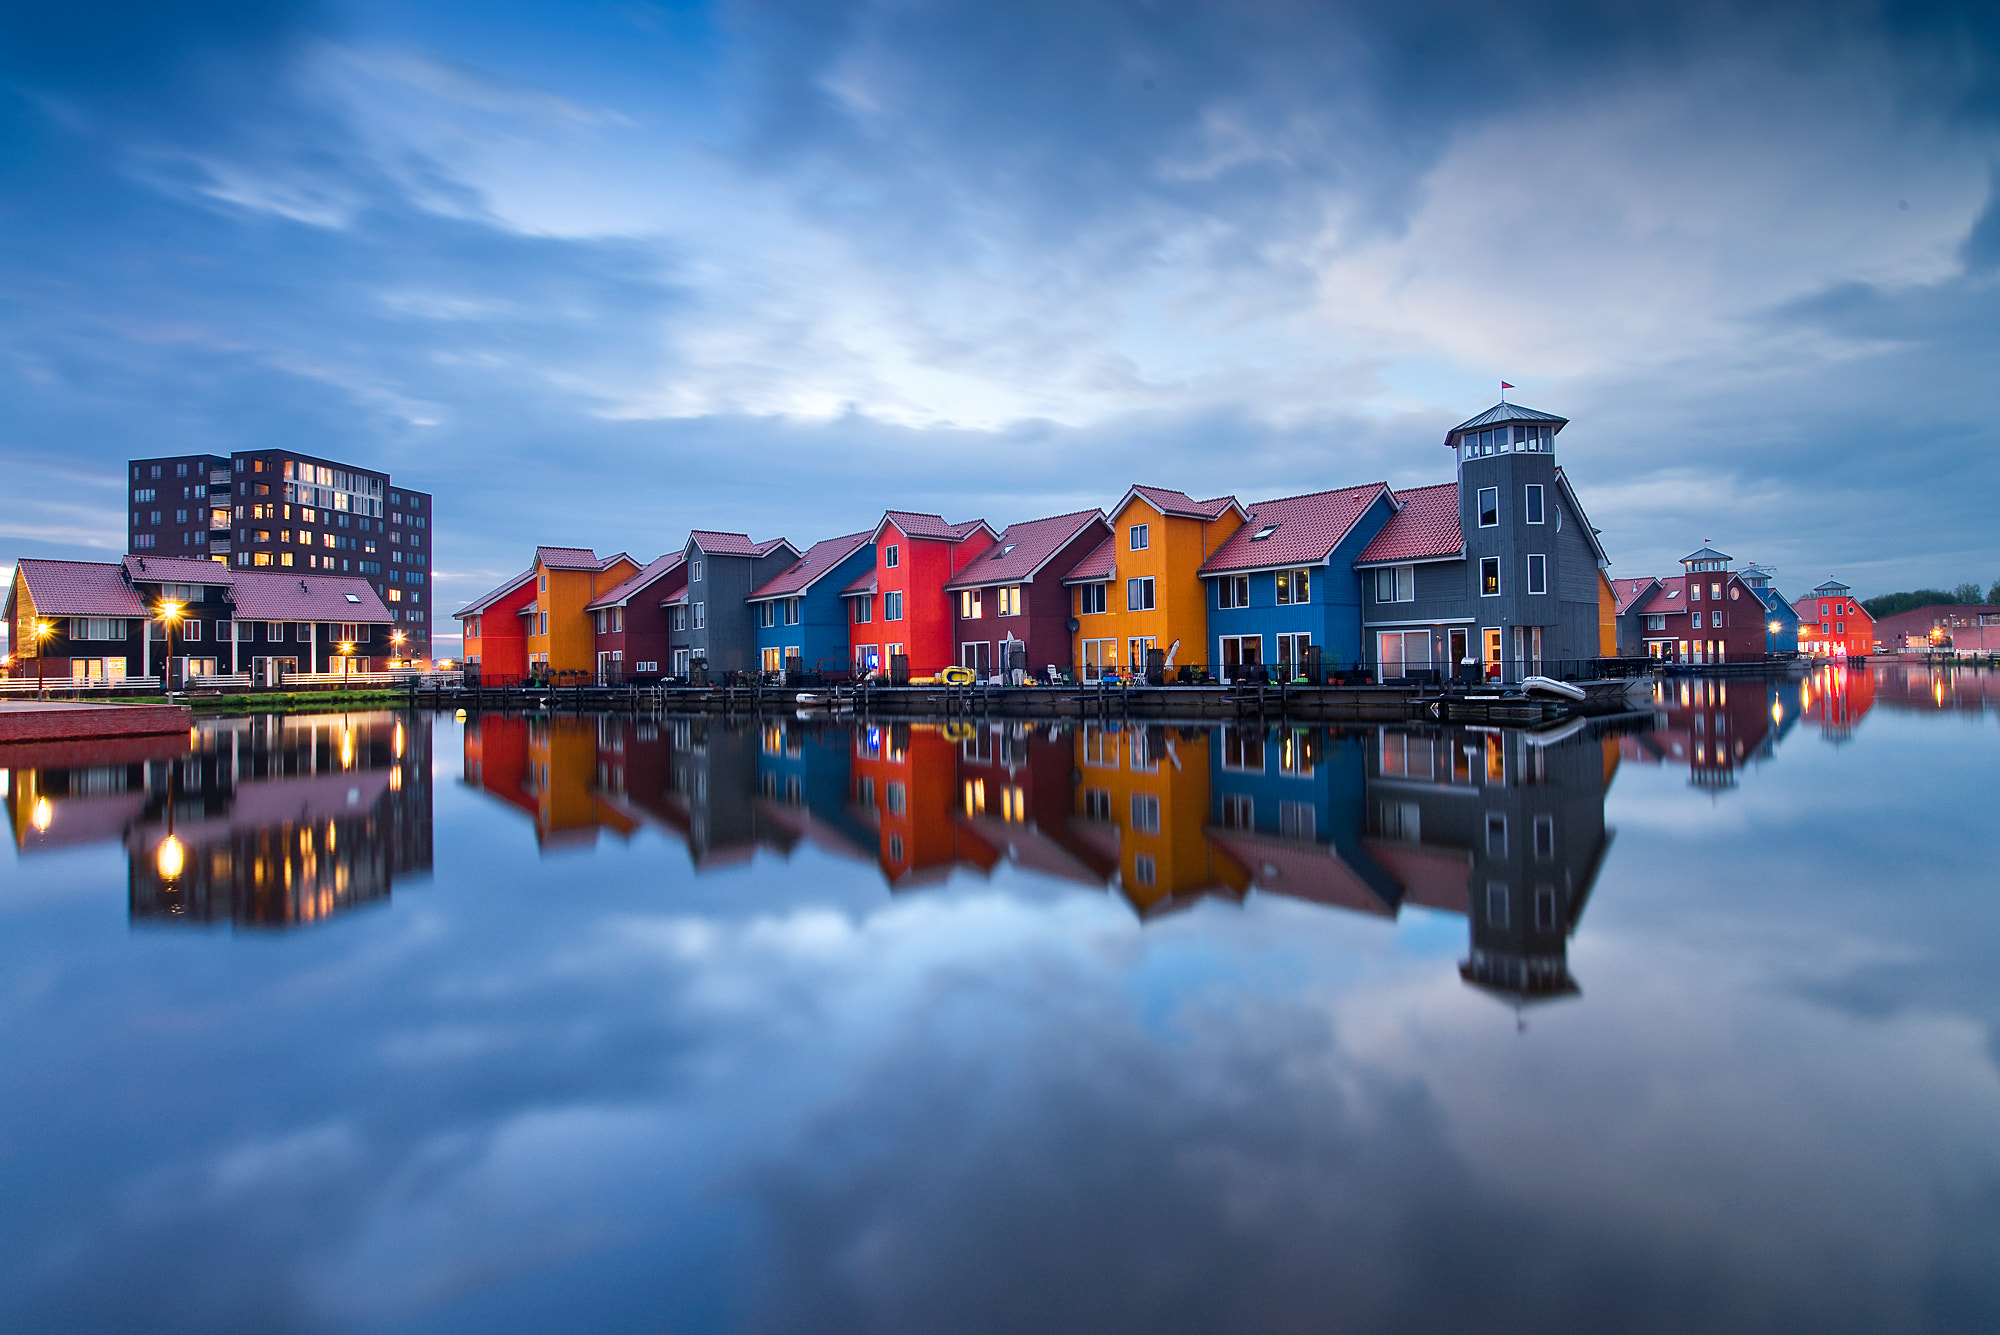 Photograph Blue Hour by Daniel Bosma on 500px